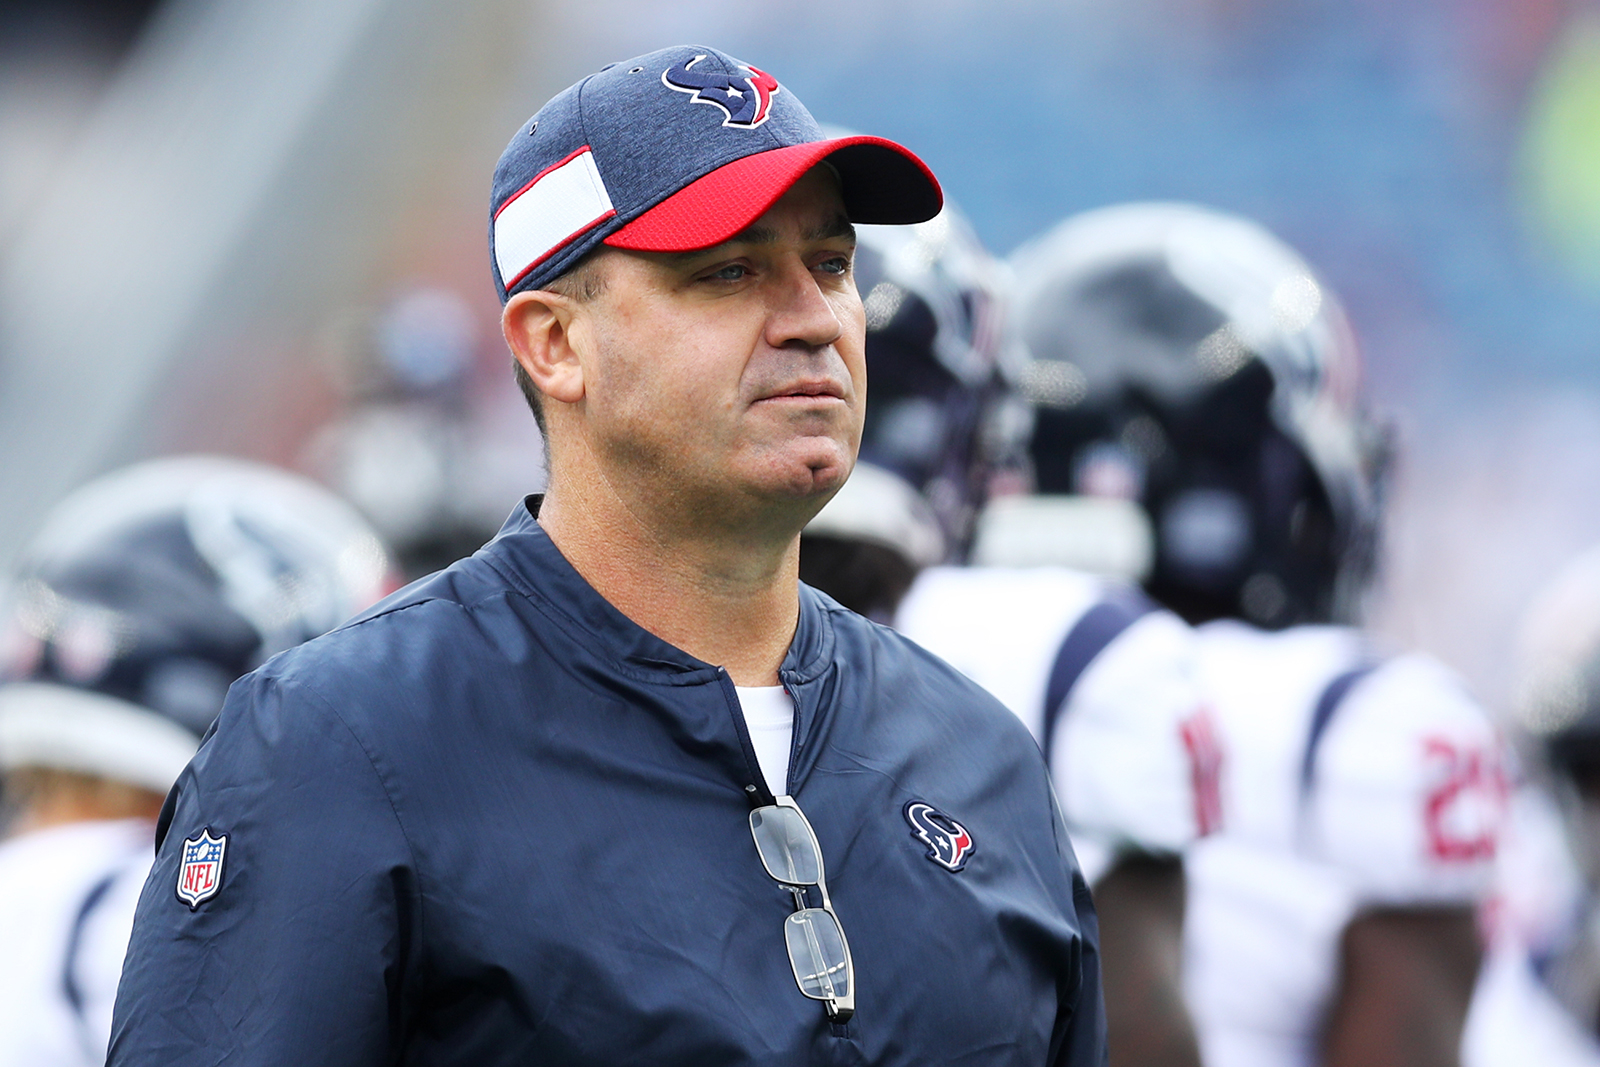 Head coach Bill O'Brien of the Houston Texans looks on before the game against the New England Patriots at Gillette Stadium in Foxborough, Massachusetts, on September 9, 2018.